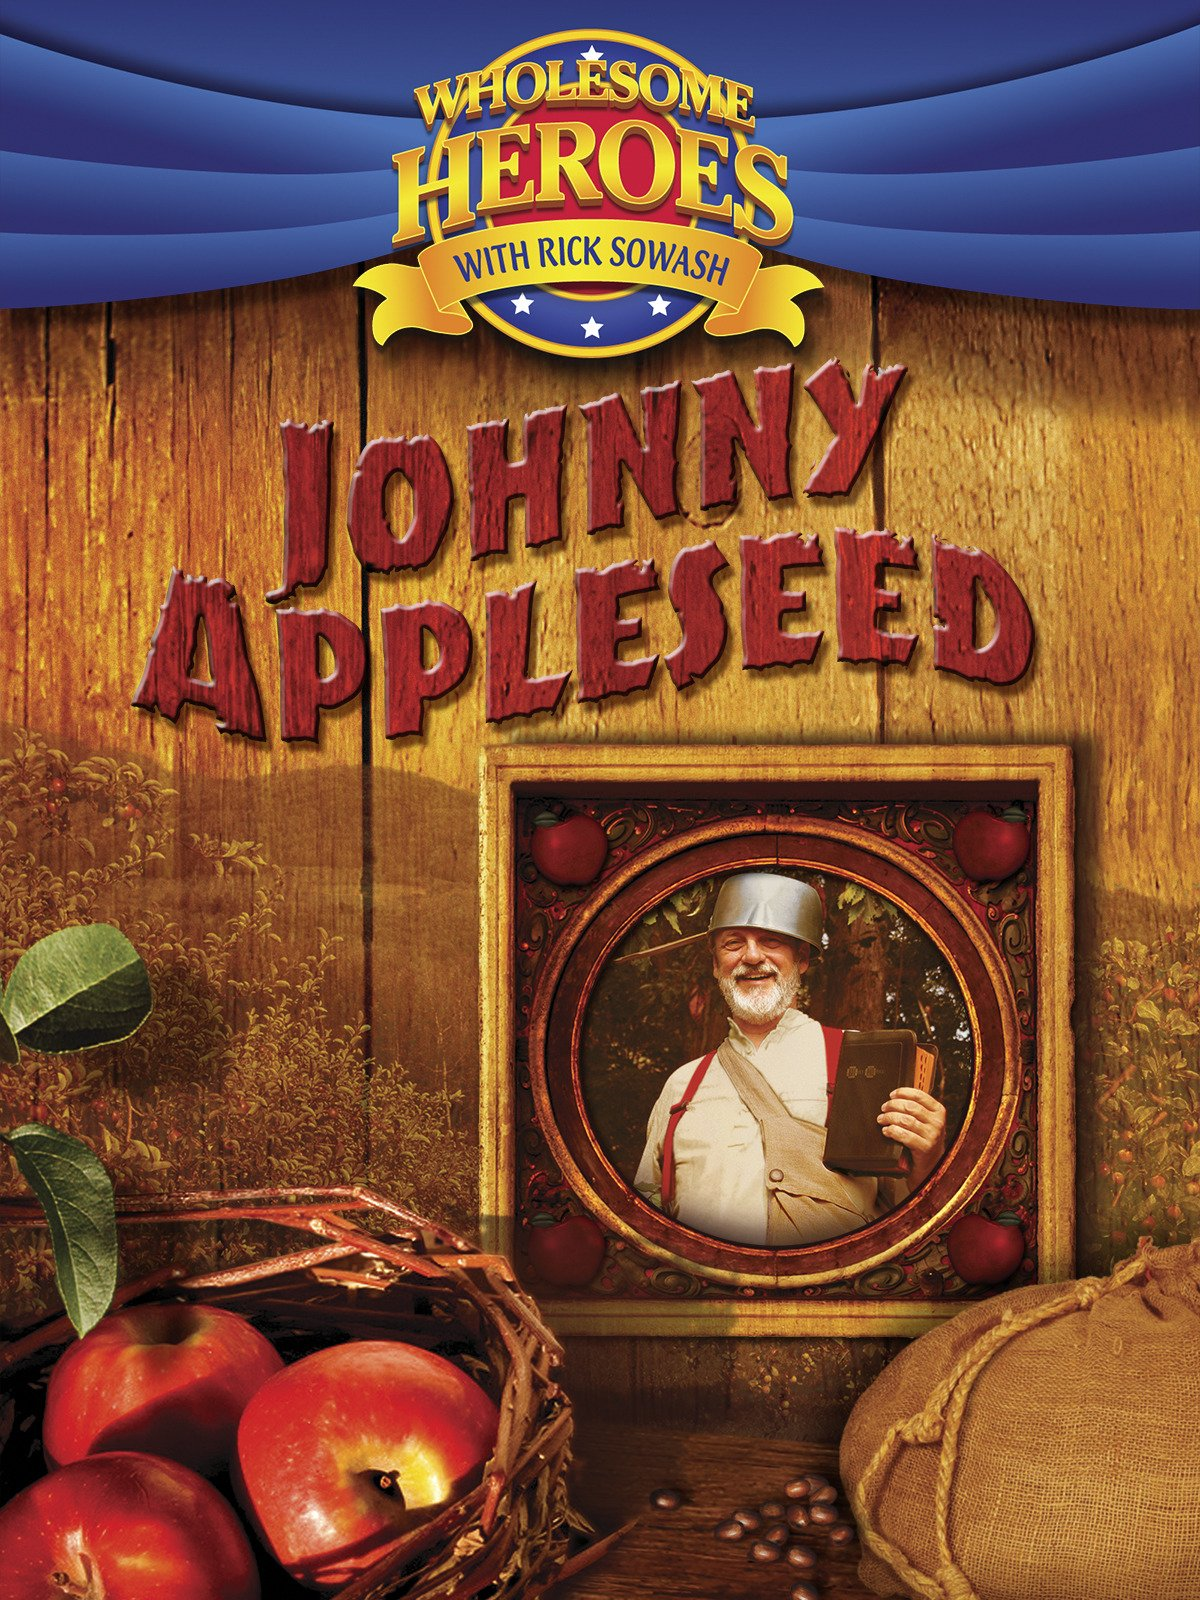 Wholesome Heroes With Rick Sowash: Johnny Appleseed on Amazon Prime Video UK